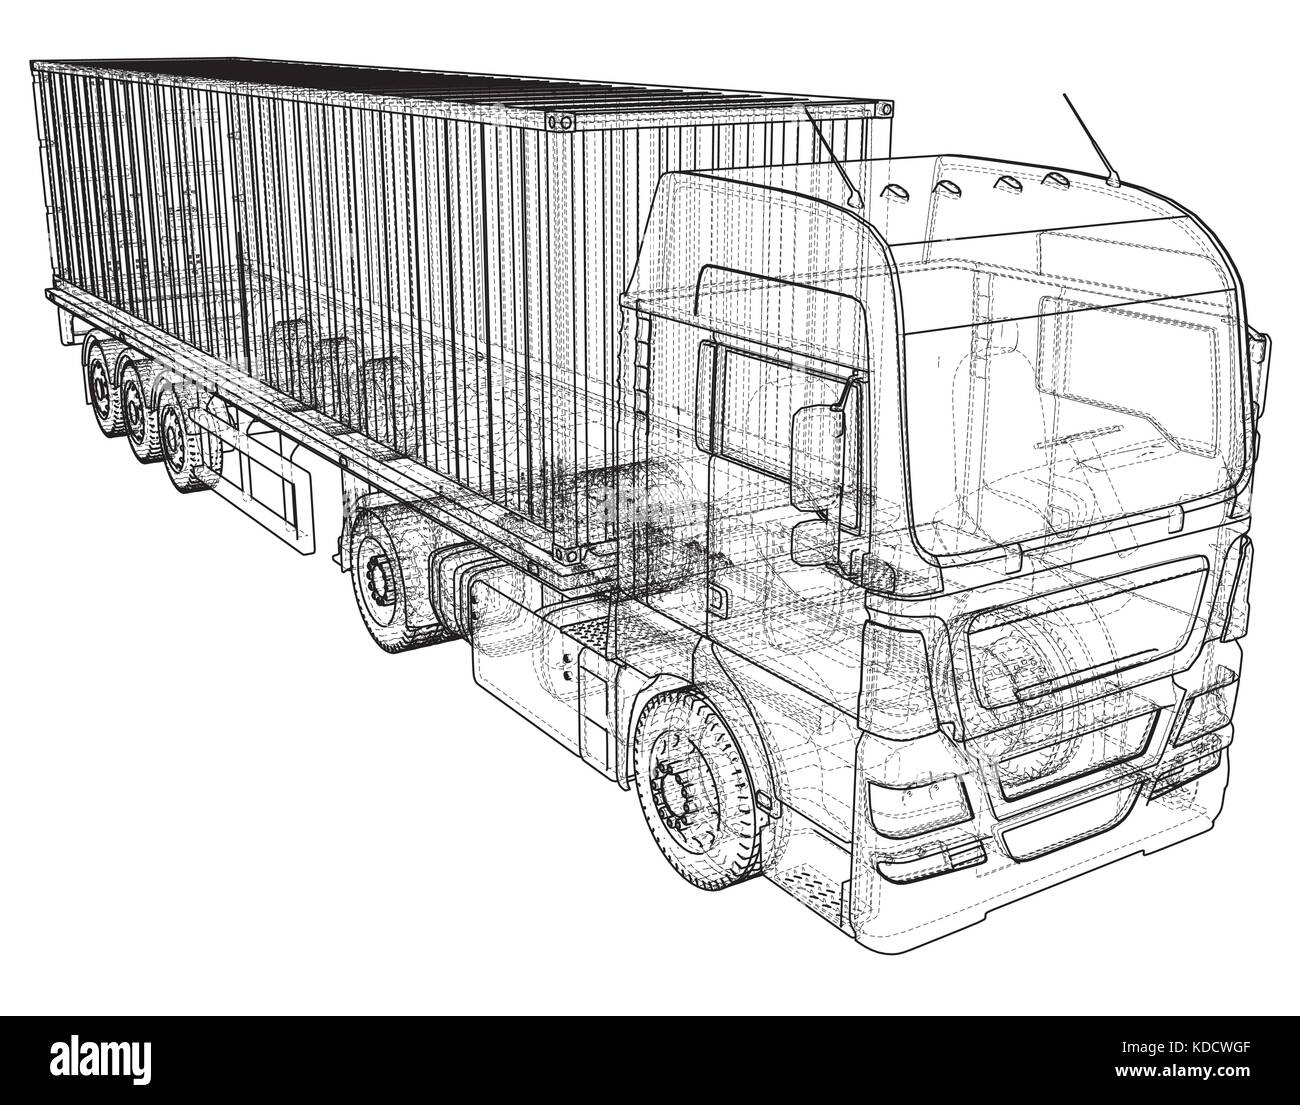 Top View Tractor Trailer Illustration Stock Photos Car Wiring Image Search Results Cargo Truck Wire Frame Eps10 Format Vector Rendering Of 3d